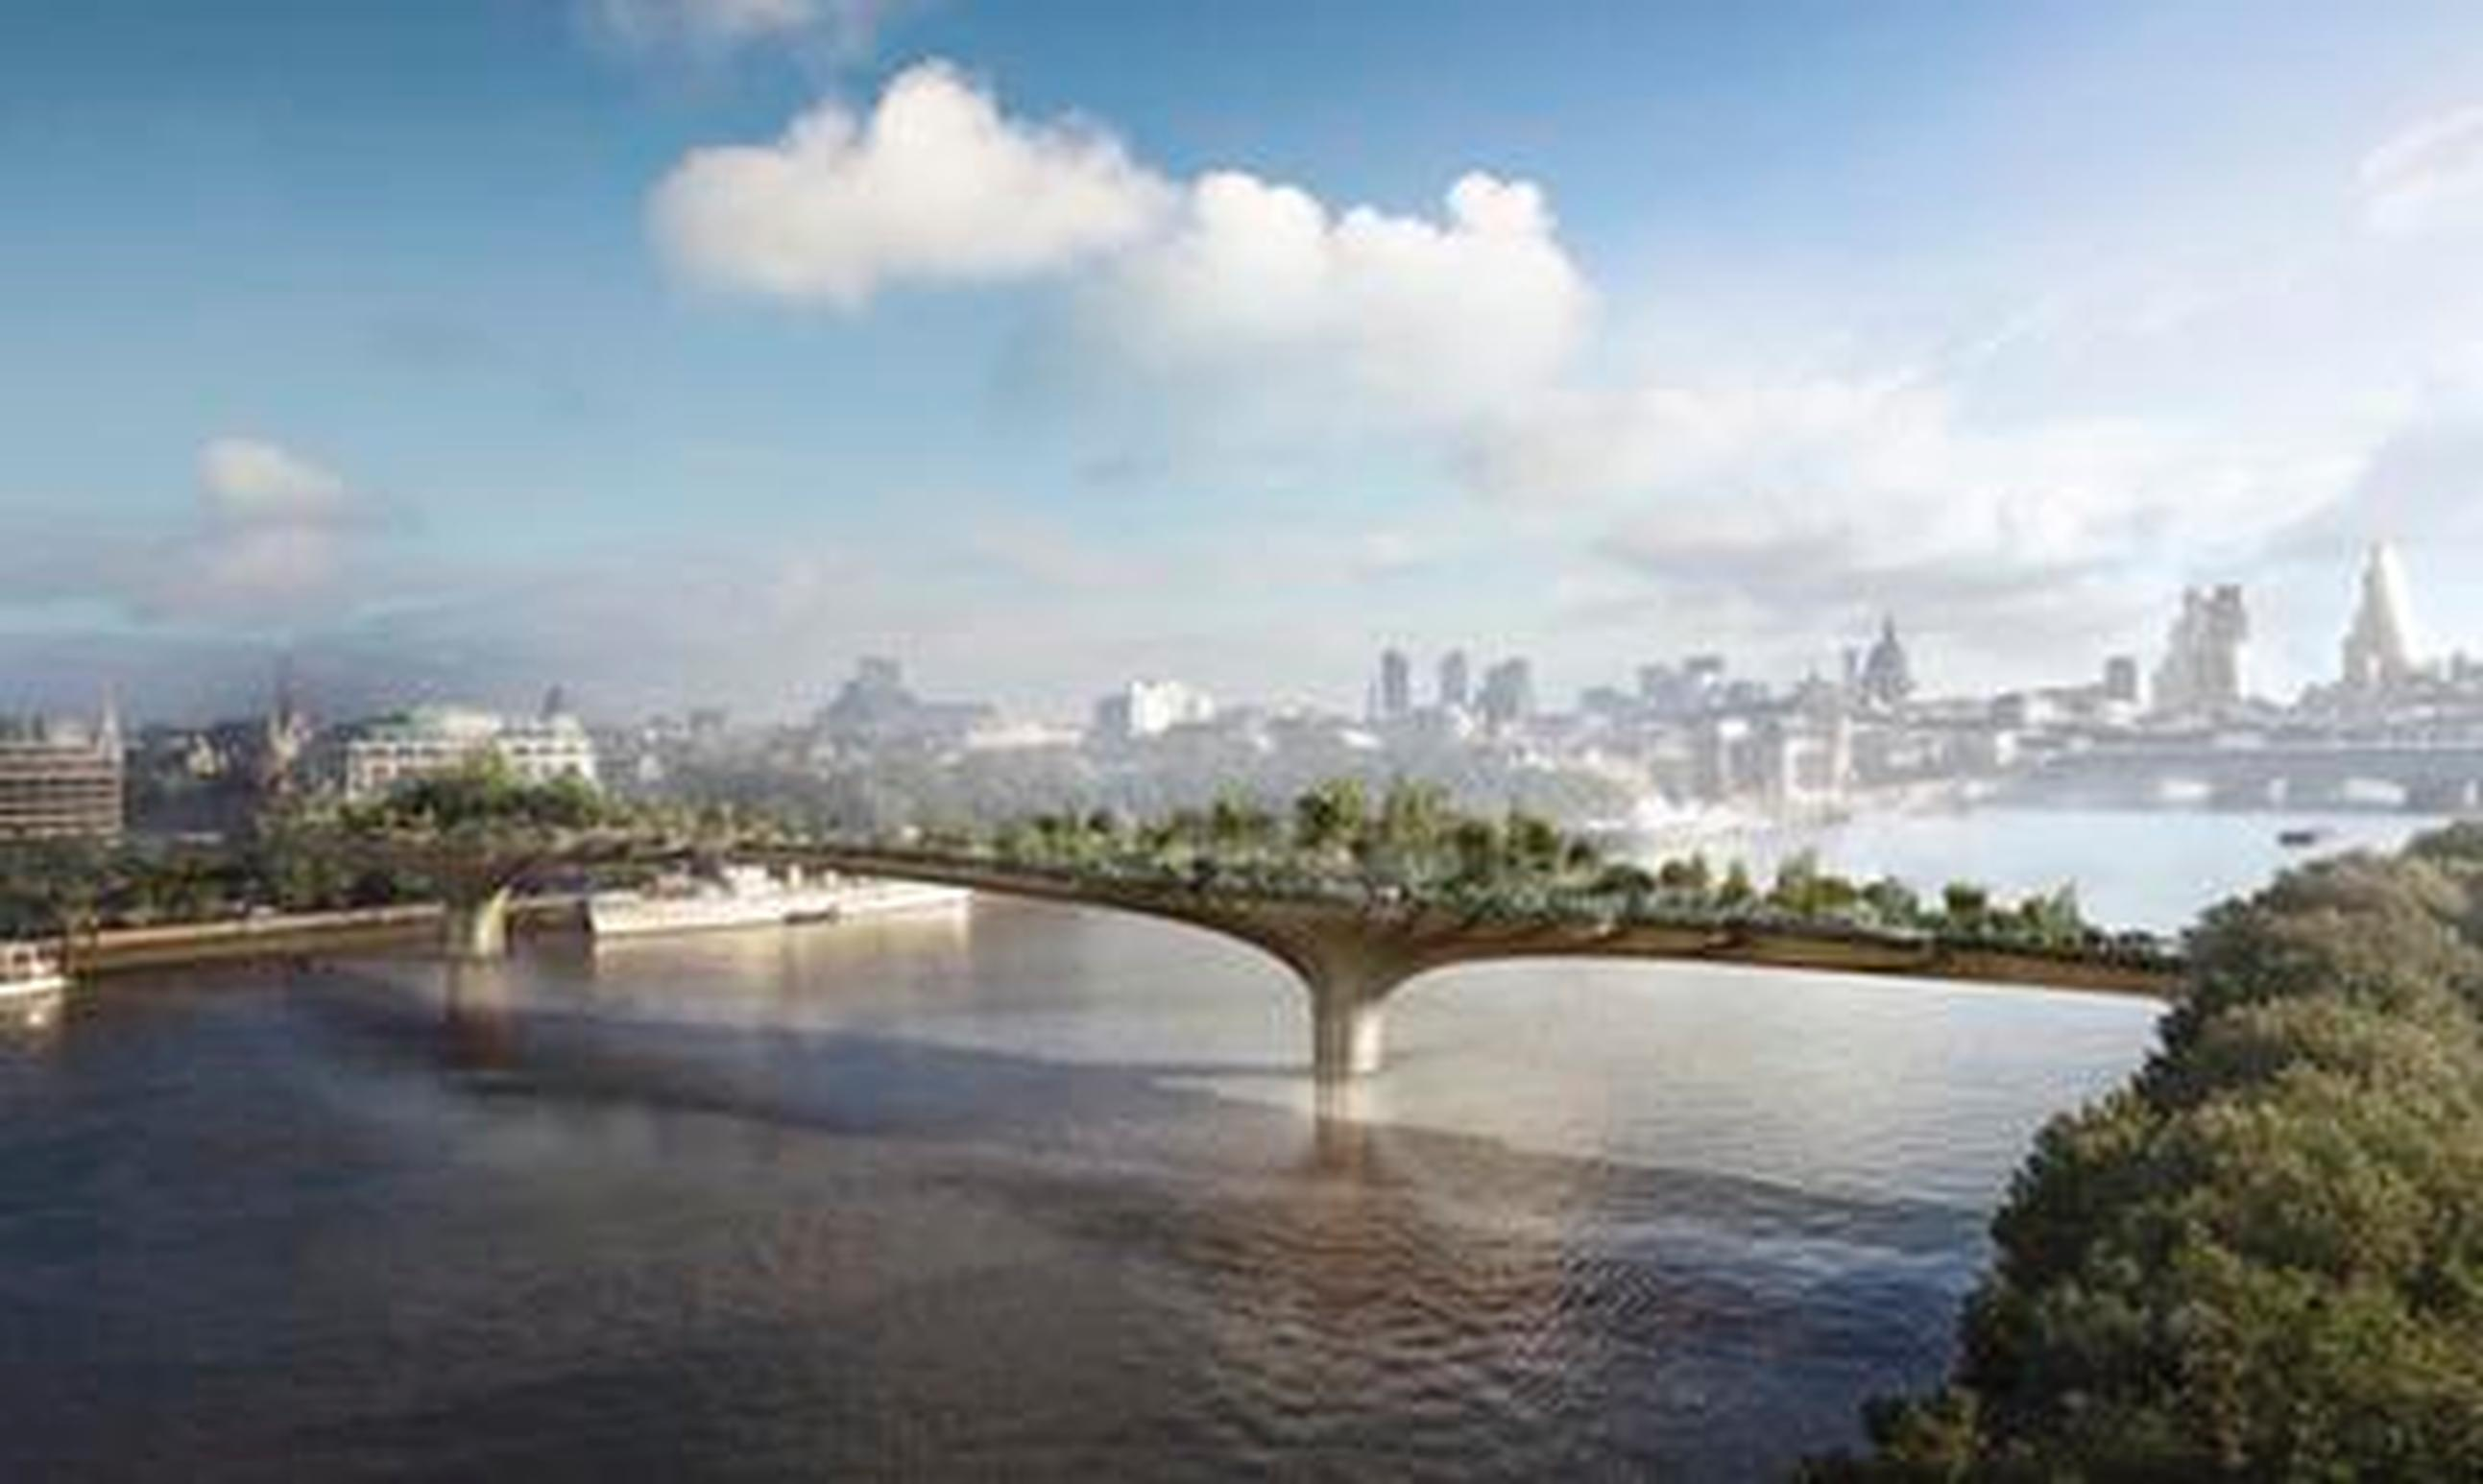 The Garden Bridge is one infrastructure project that the DfT was urged to review